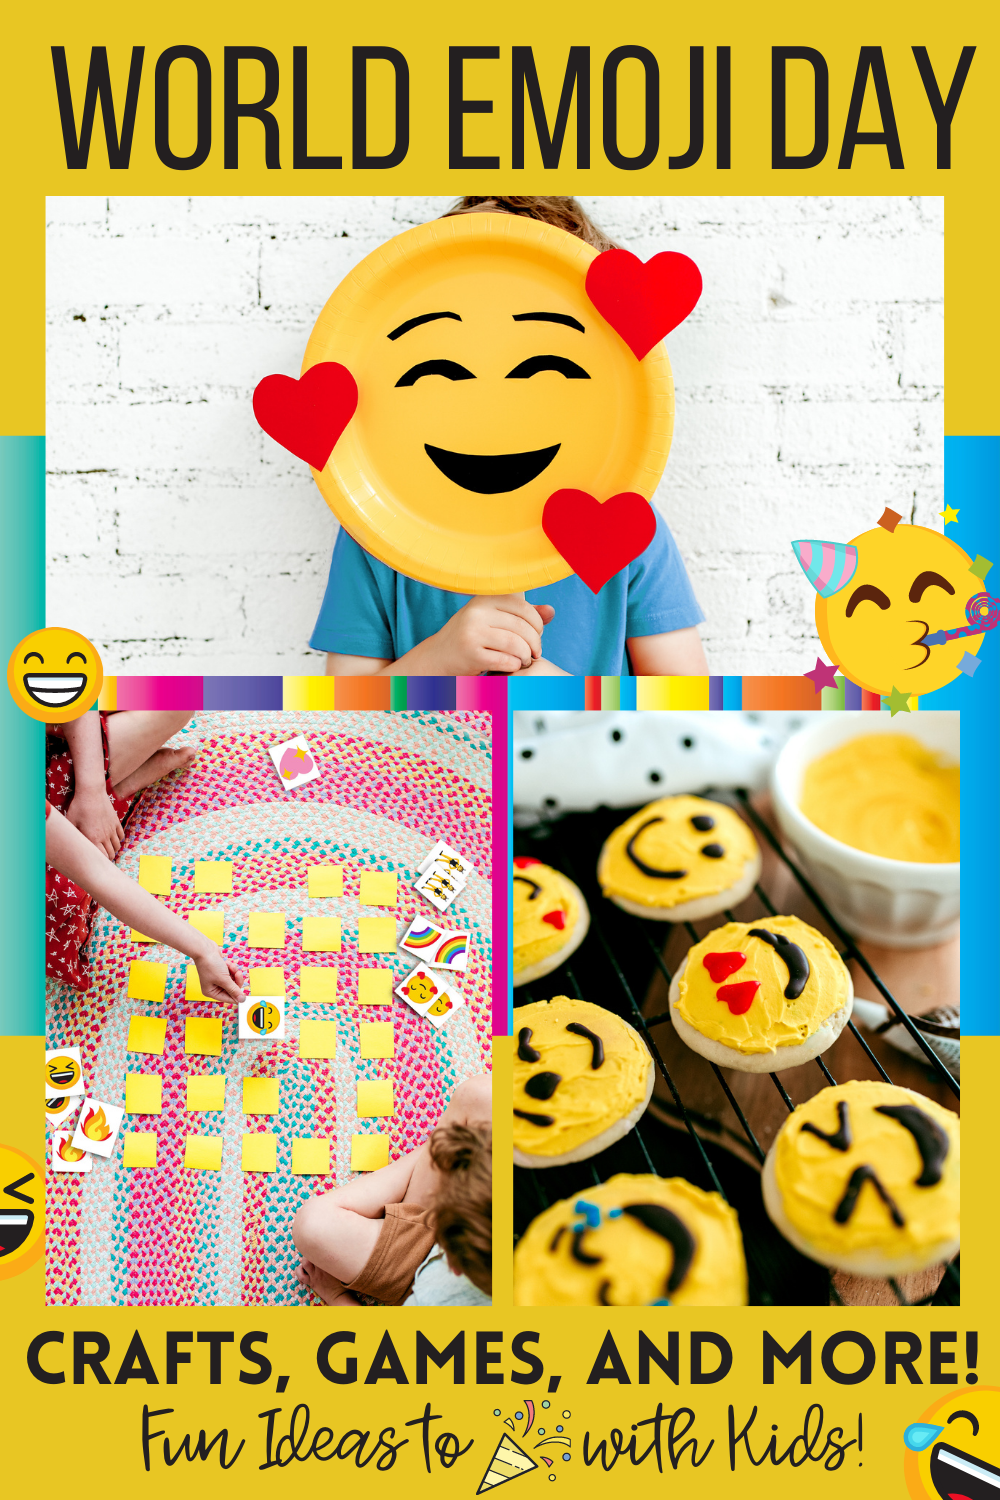 Celebrate World Emoji Day with kids by doing fun crafts, games, baking and a movie night! Jessica Grant shares more activities for kids on Emoji Day!!